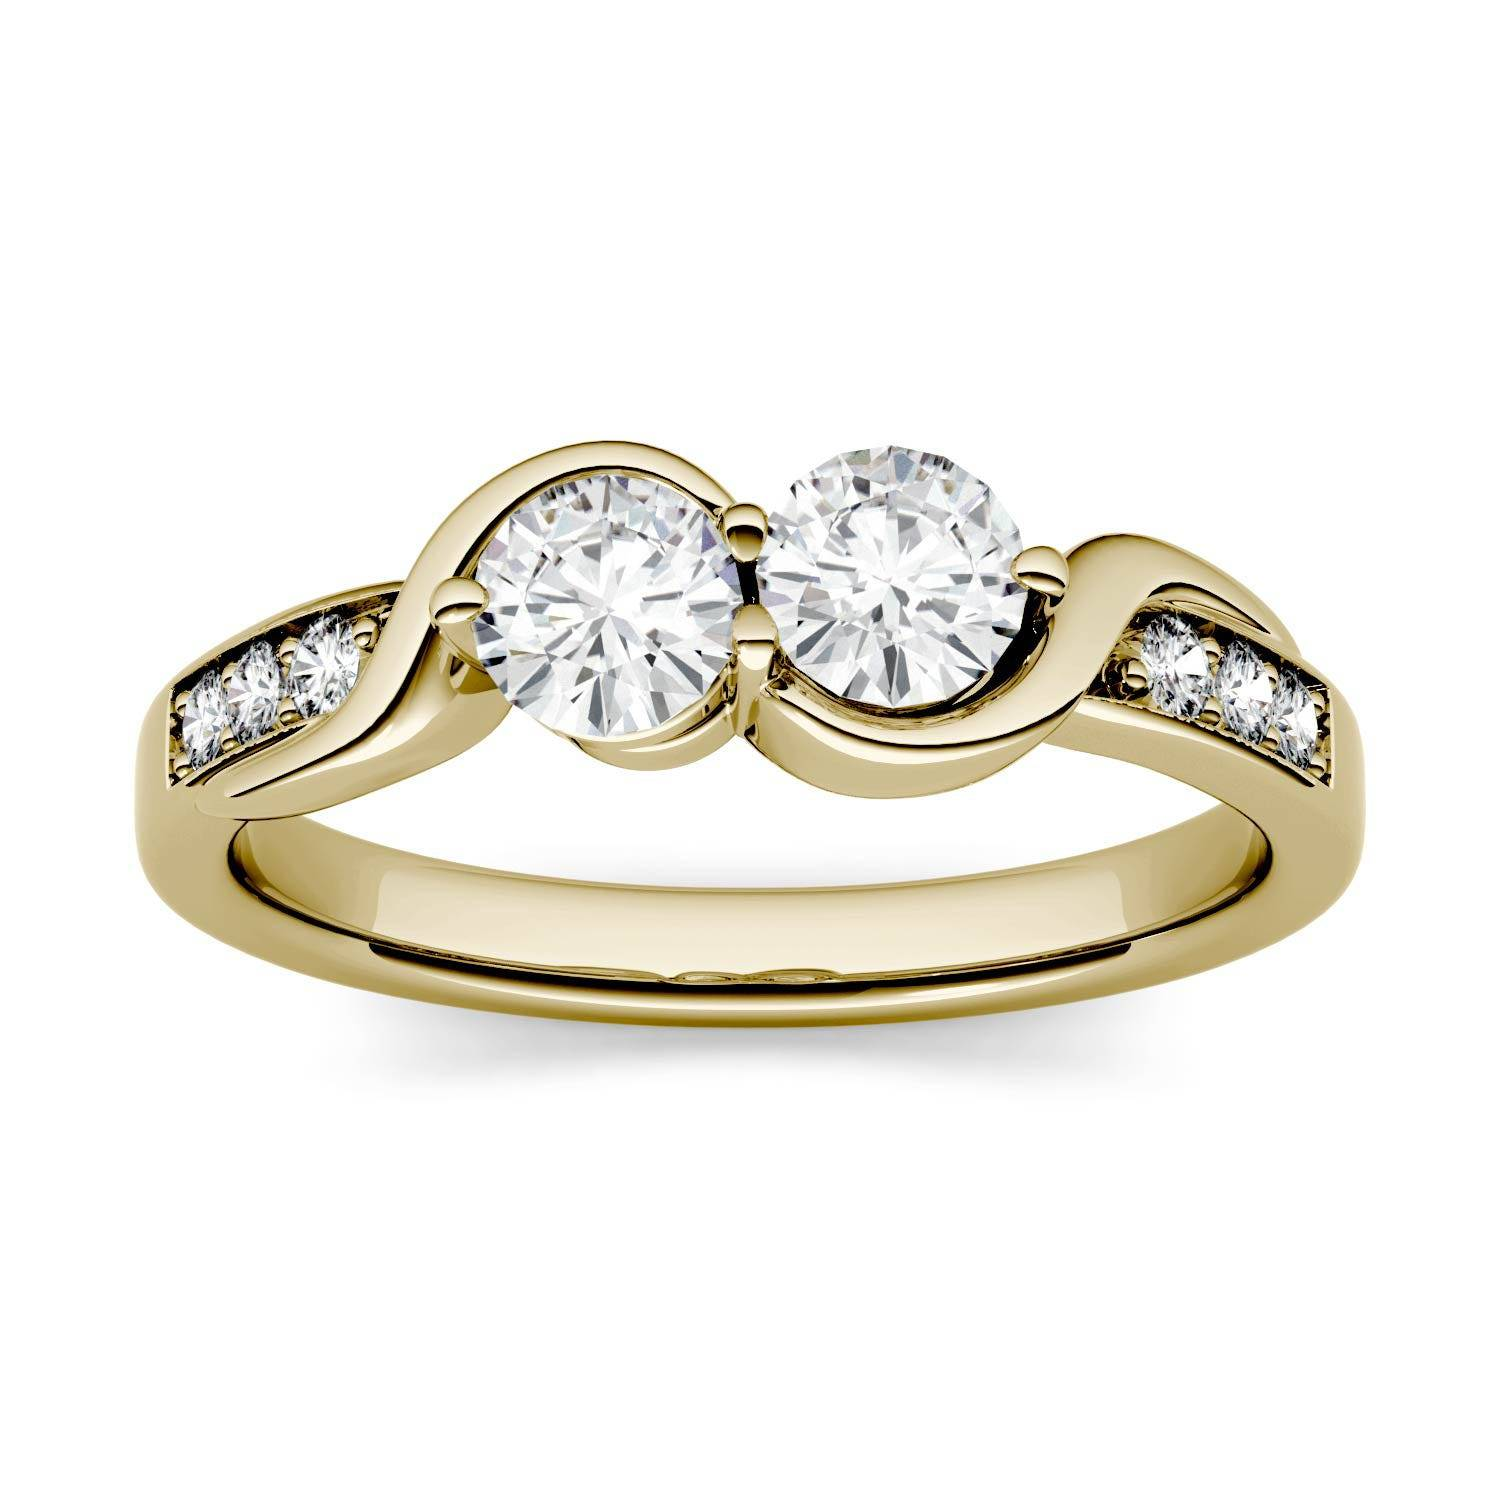 Charles & Colvard Two Stone Swirl with Side Accents Wedding Ring in 14K Yellow Gold, Size: 8, 1.12CTW Round Forever One - Colorless Moissanite Charles & Colvard  - Yellow Gold - Size: 8